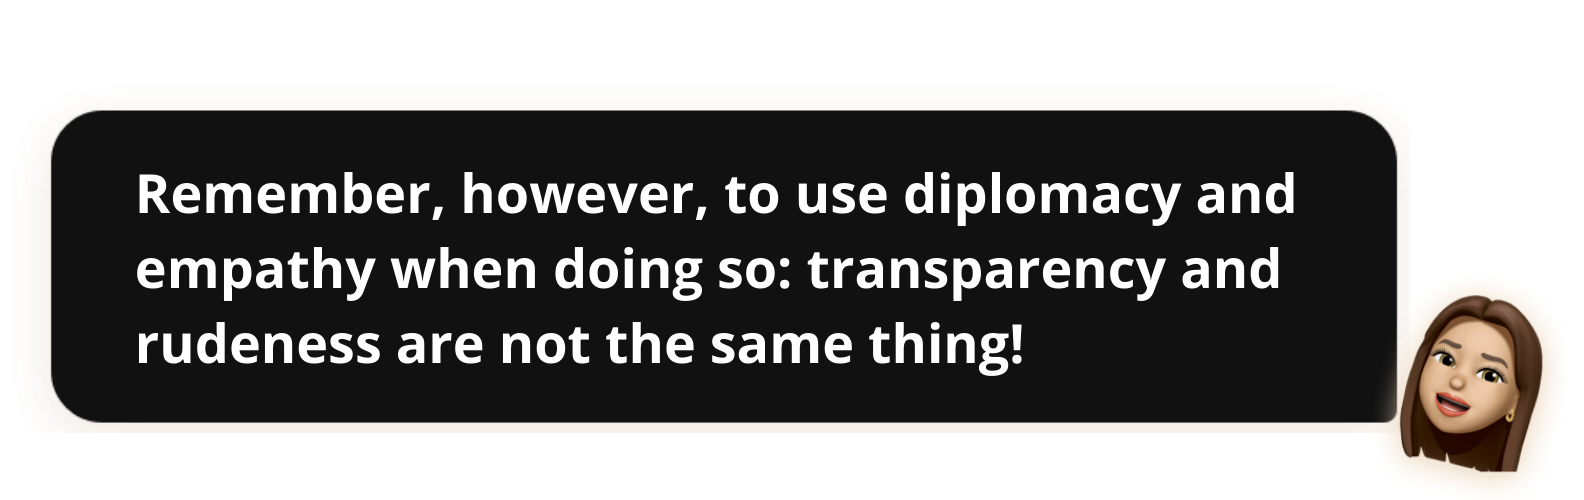 Remember, however, to use diplomacy and empathy when doing so: transparency and rudeness are not the same thing!